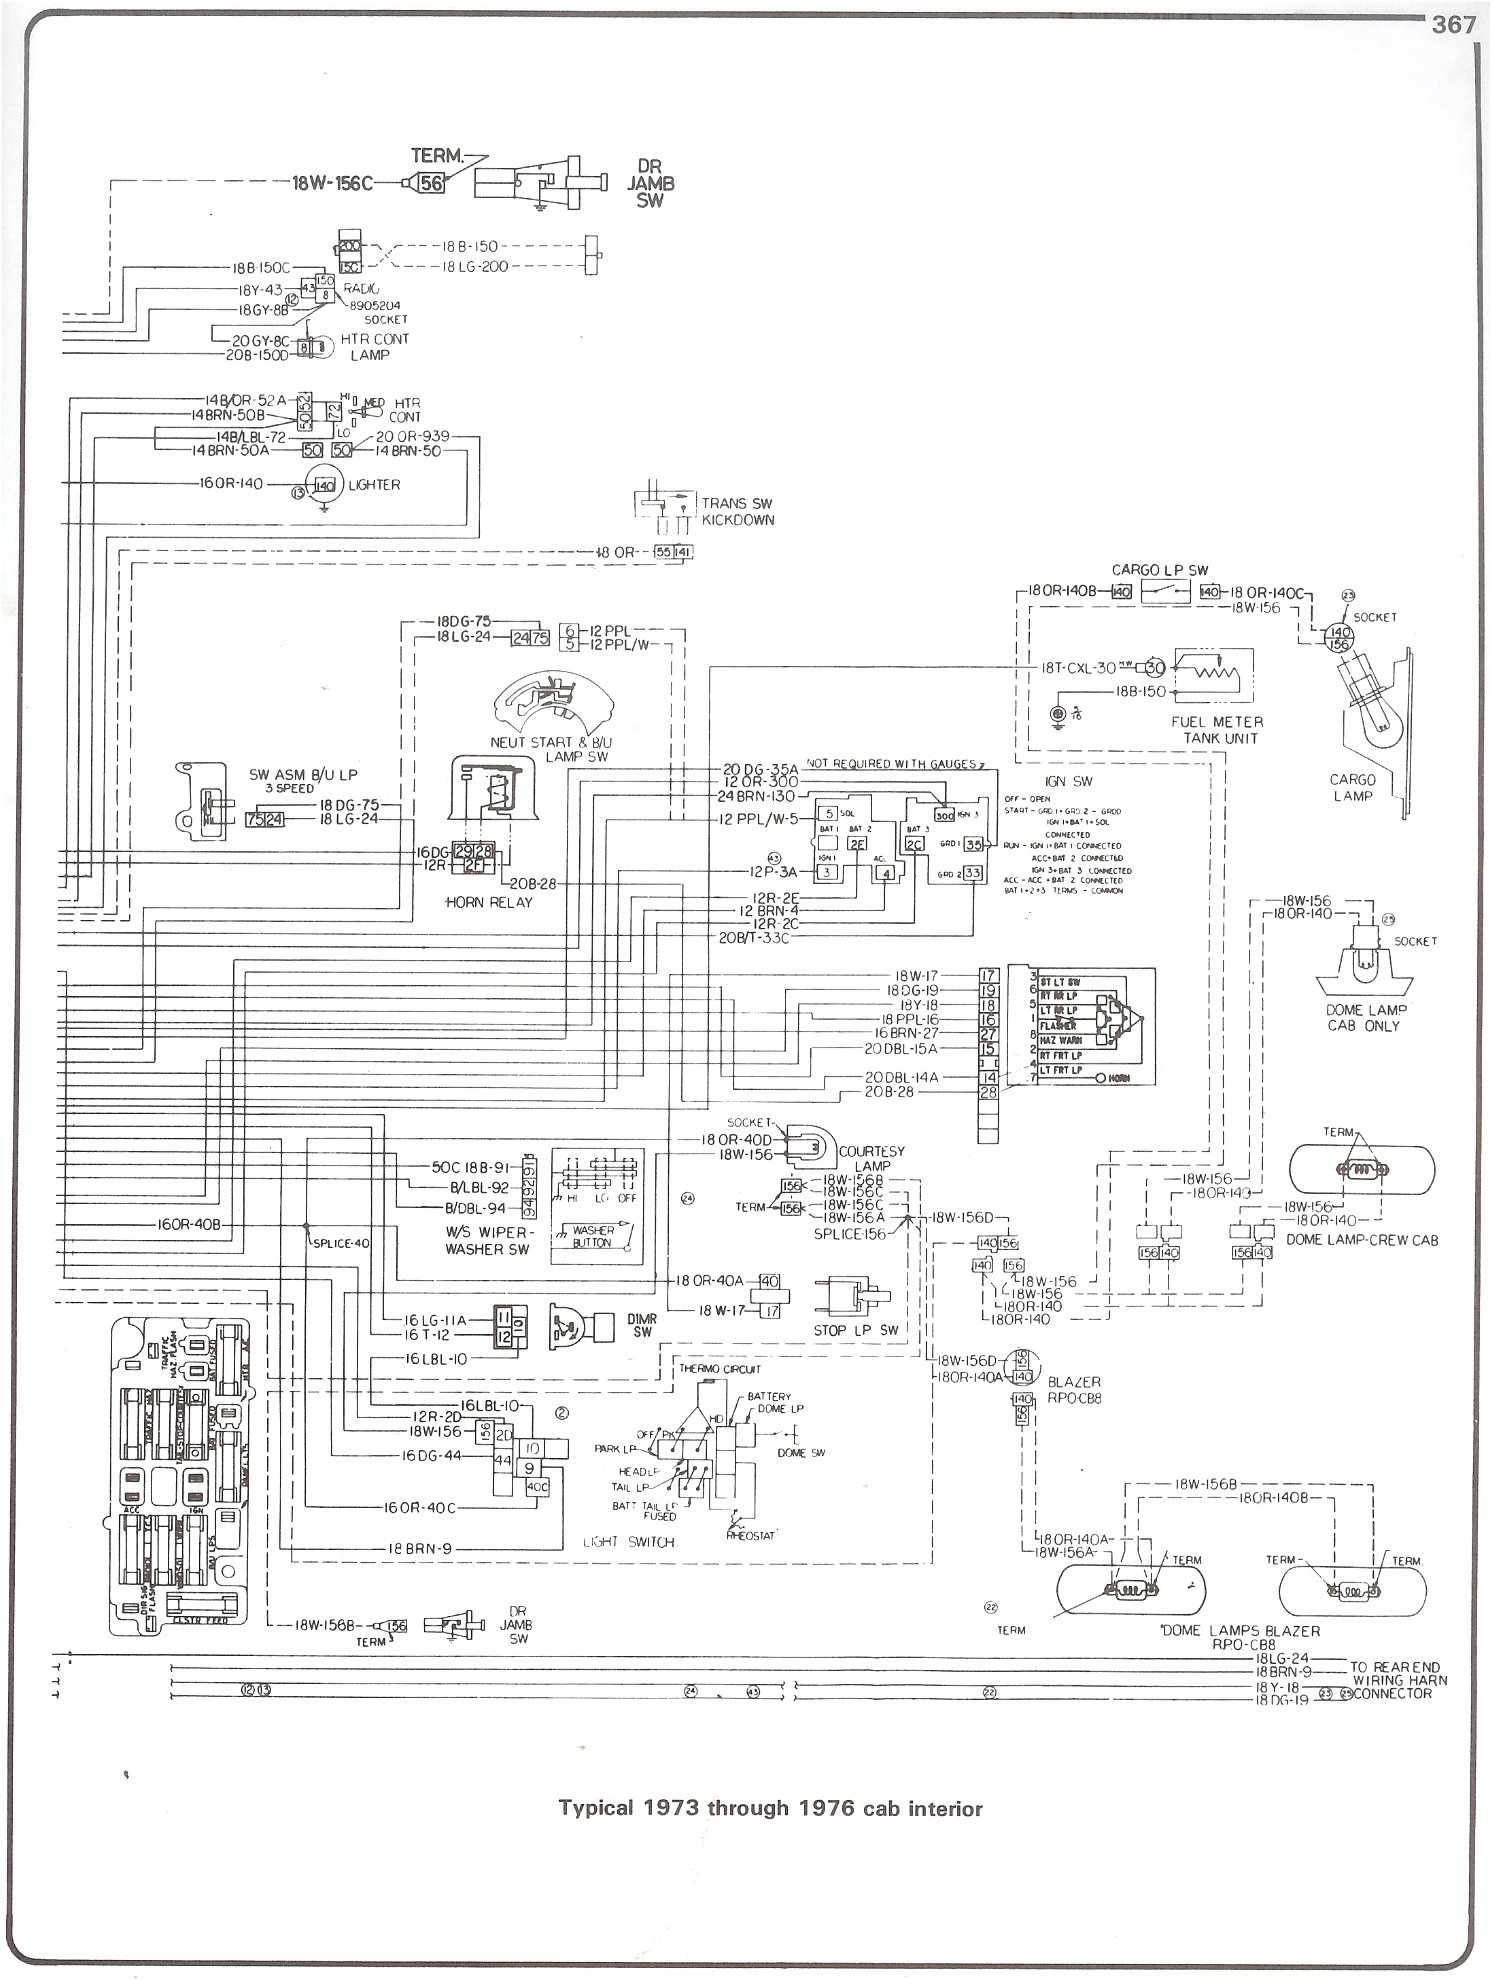 hight resolution of complete 73 87 wiring diagrams 76 chevy truck wiring diagram 76 chevy truck wiring diagram